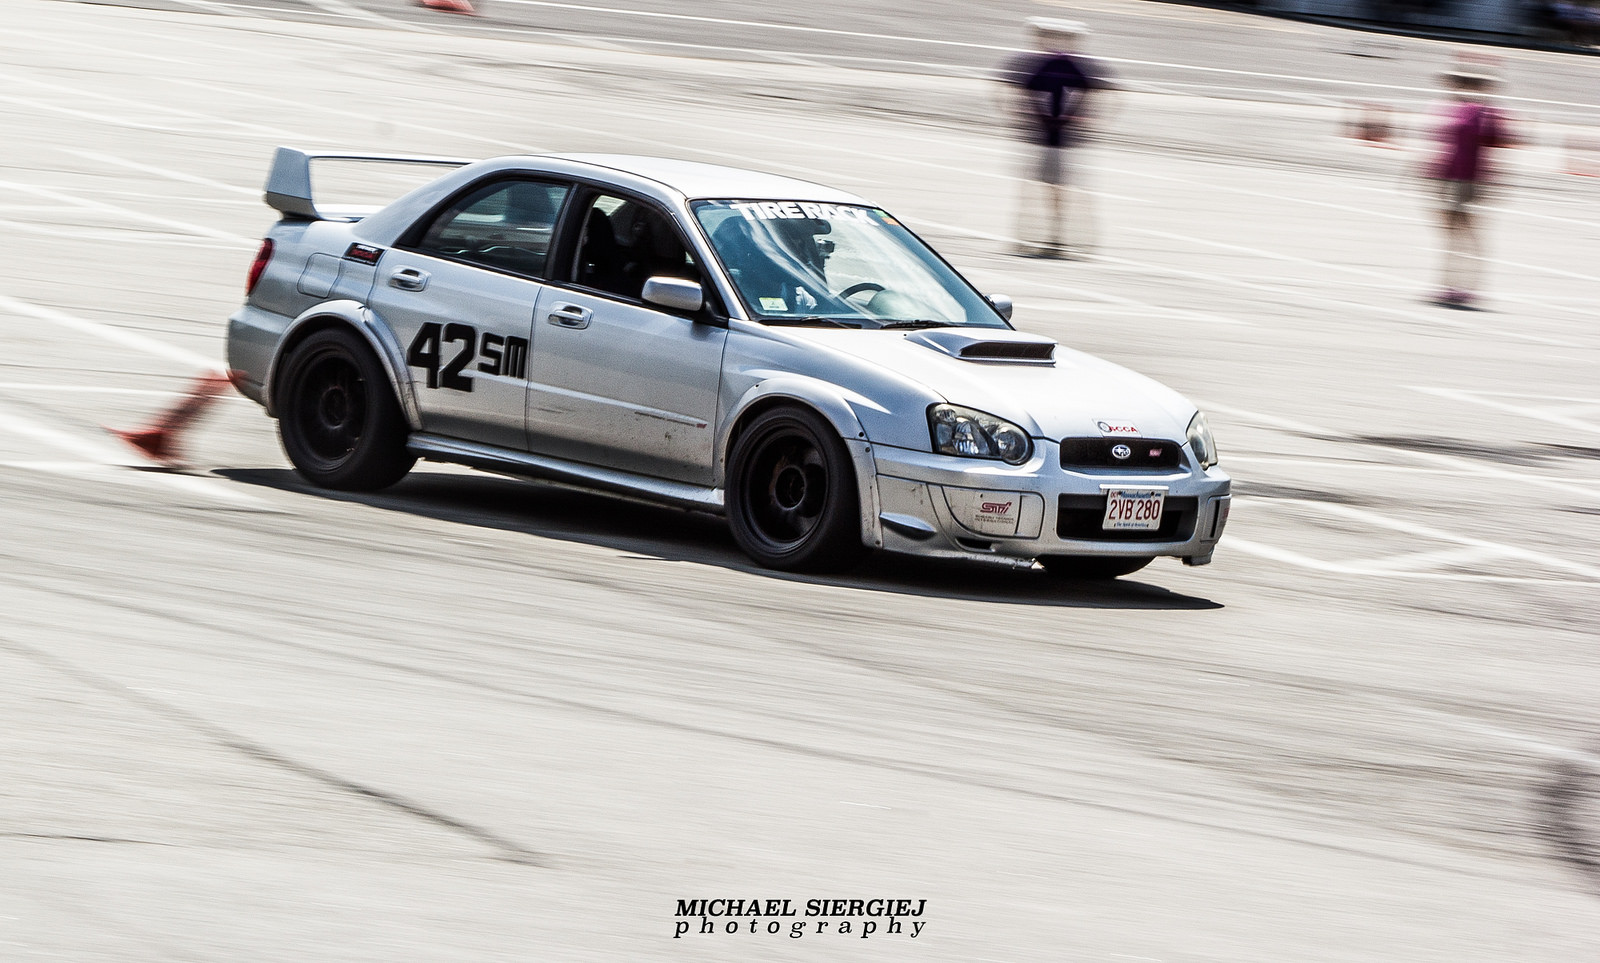 Willub's 04 SM STi: WBM and stuff-14937790581_b61eec0cb8_h-jpg